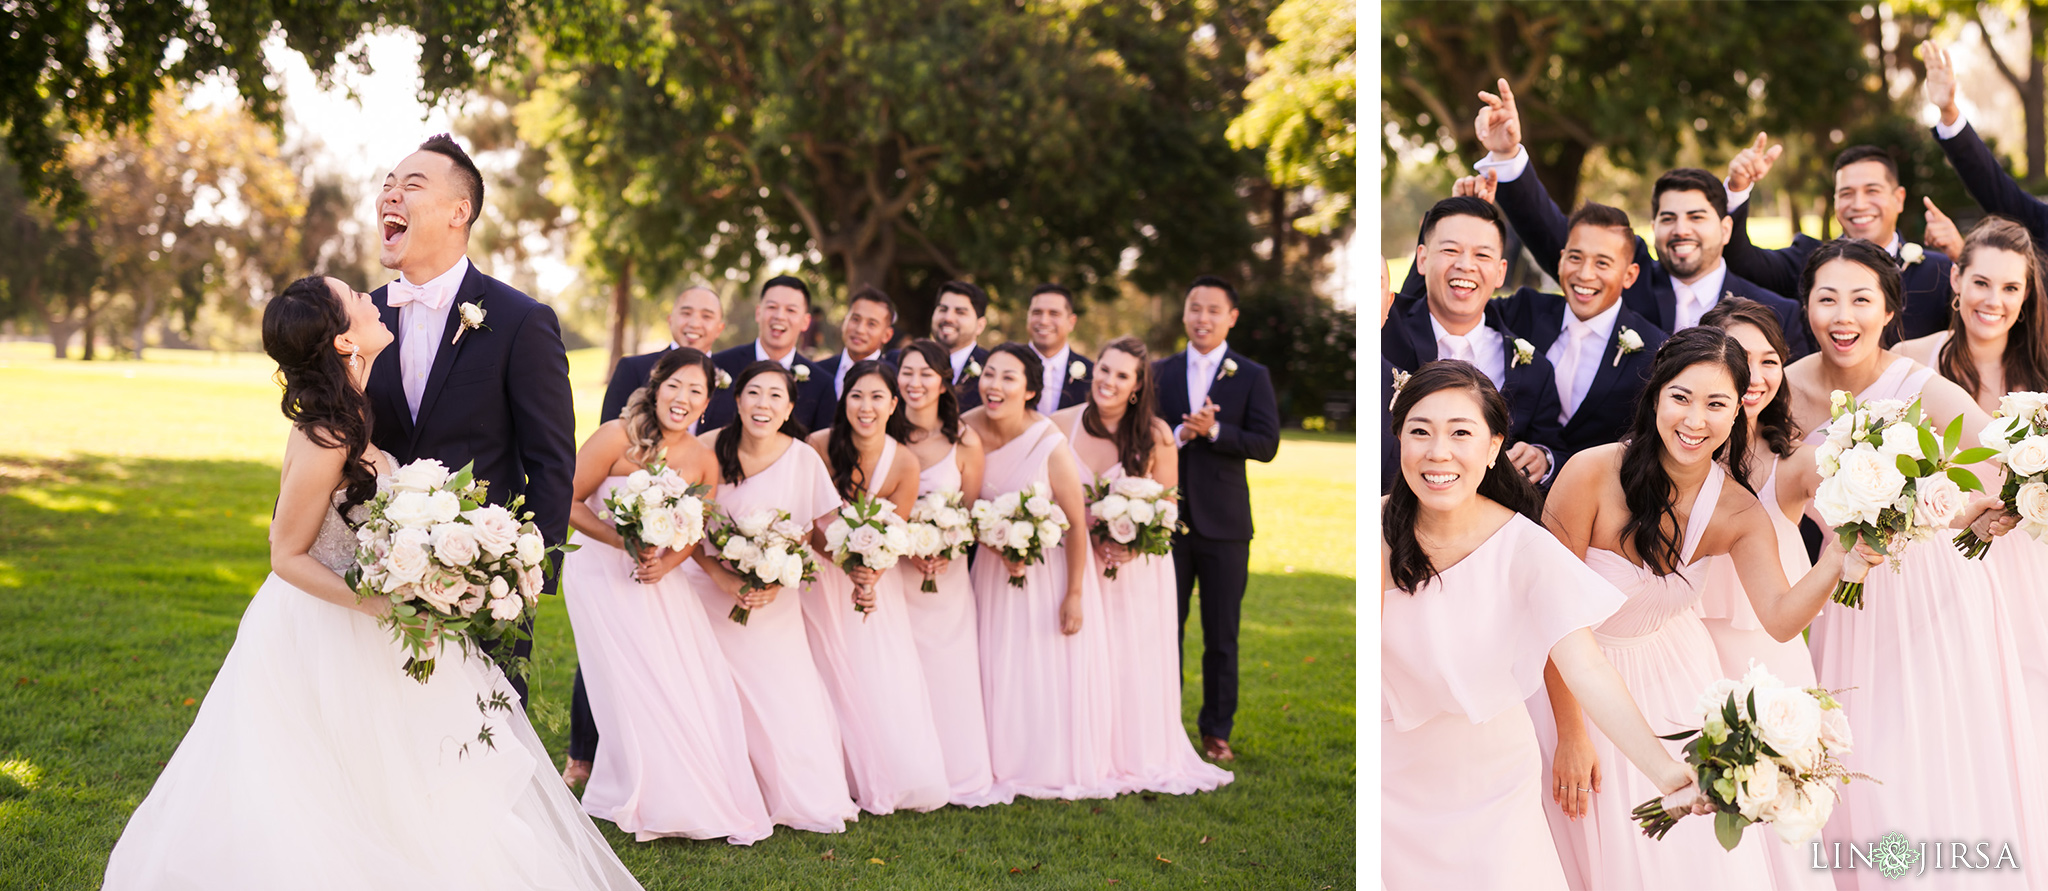 15 Los Coyotes Country Club Buena Park Wedding Photography